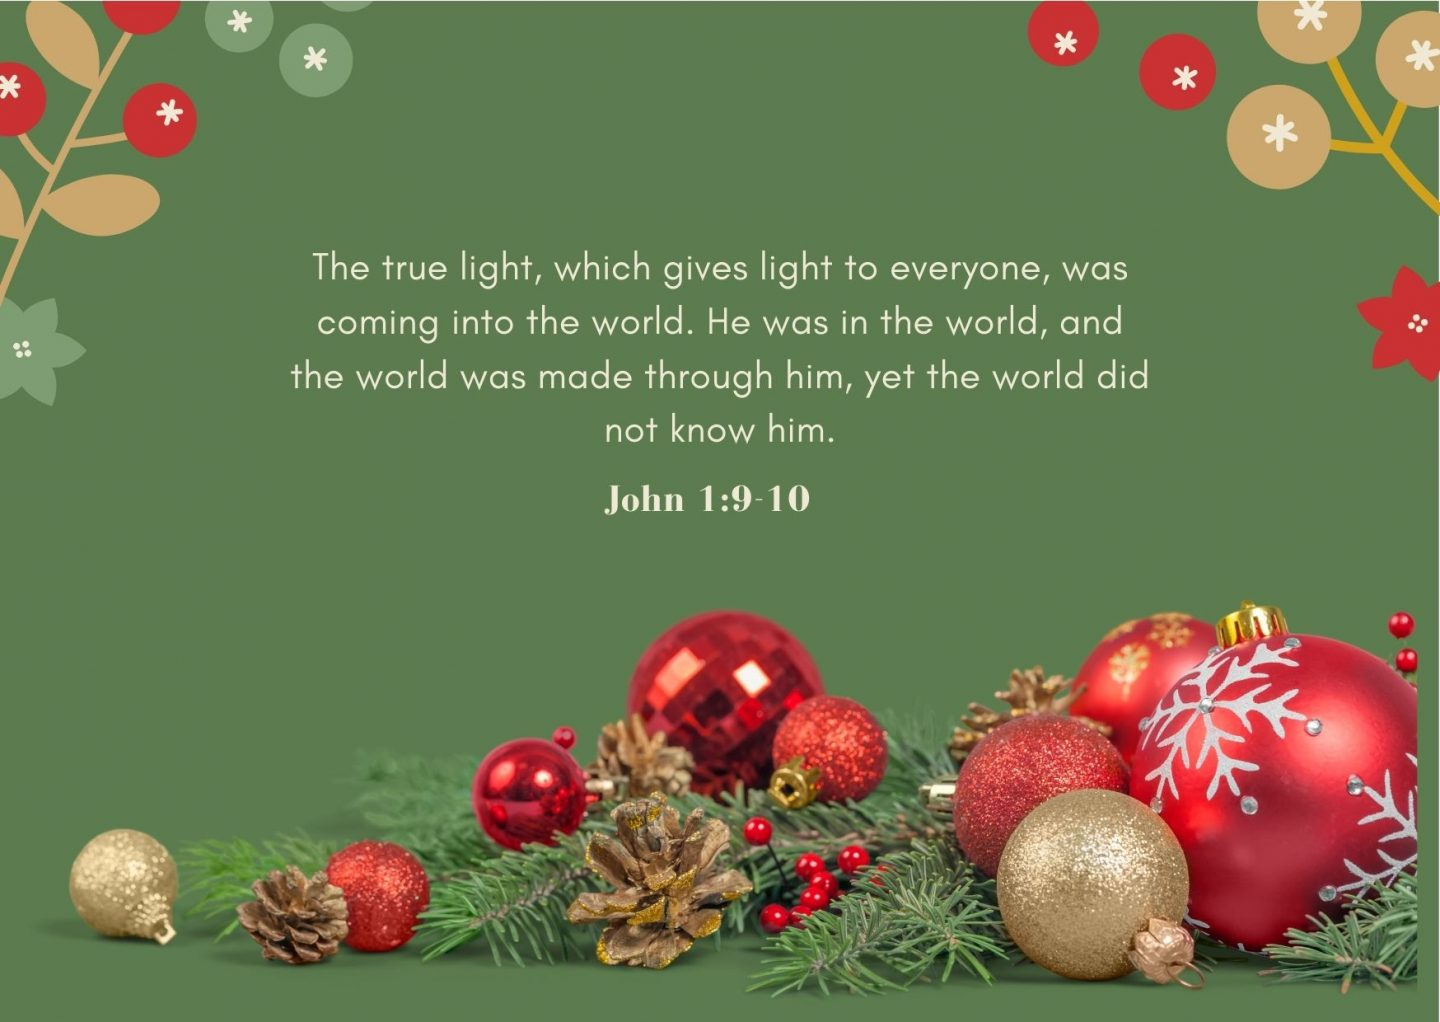 The true light, which gives light to everyone, was coming into the world. He was in the world, and the world was made through him, yet the world did not know him. The true light, which gives light to everyone, was coming into the world. He was in the world, and the world was made through him, yet the world did not know him. John 1:9-10